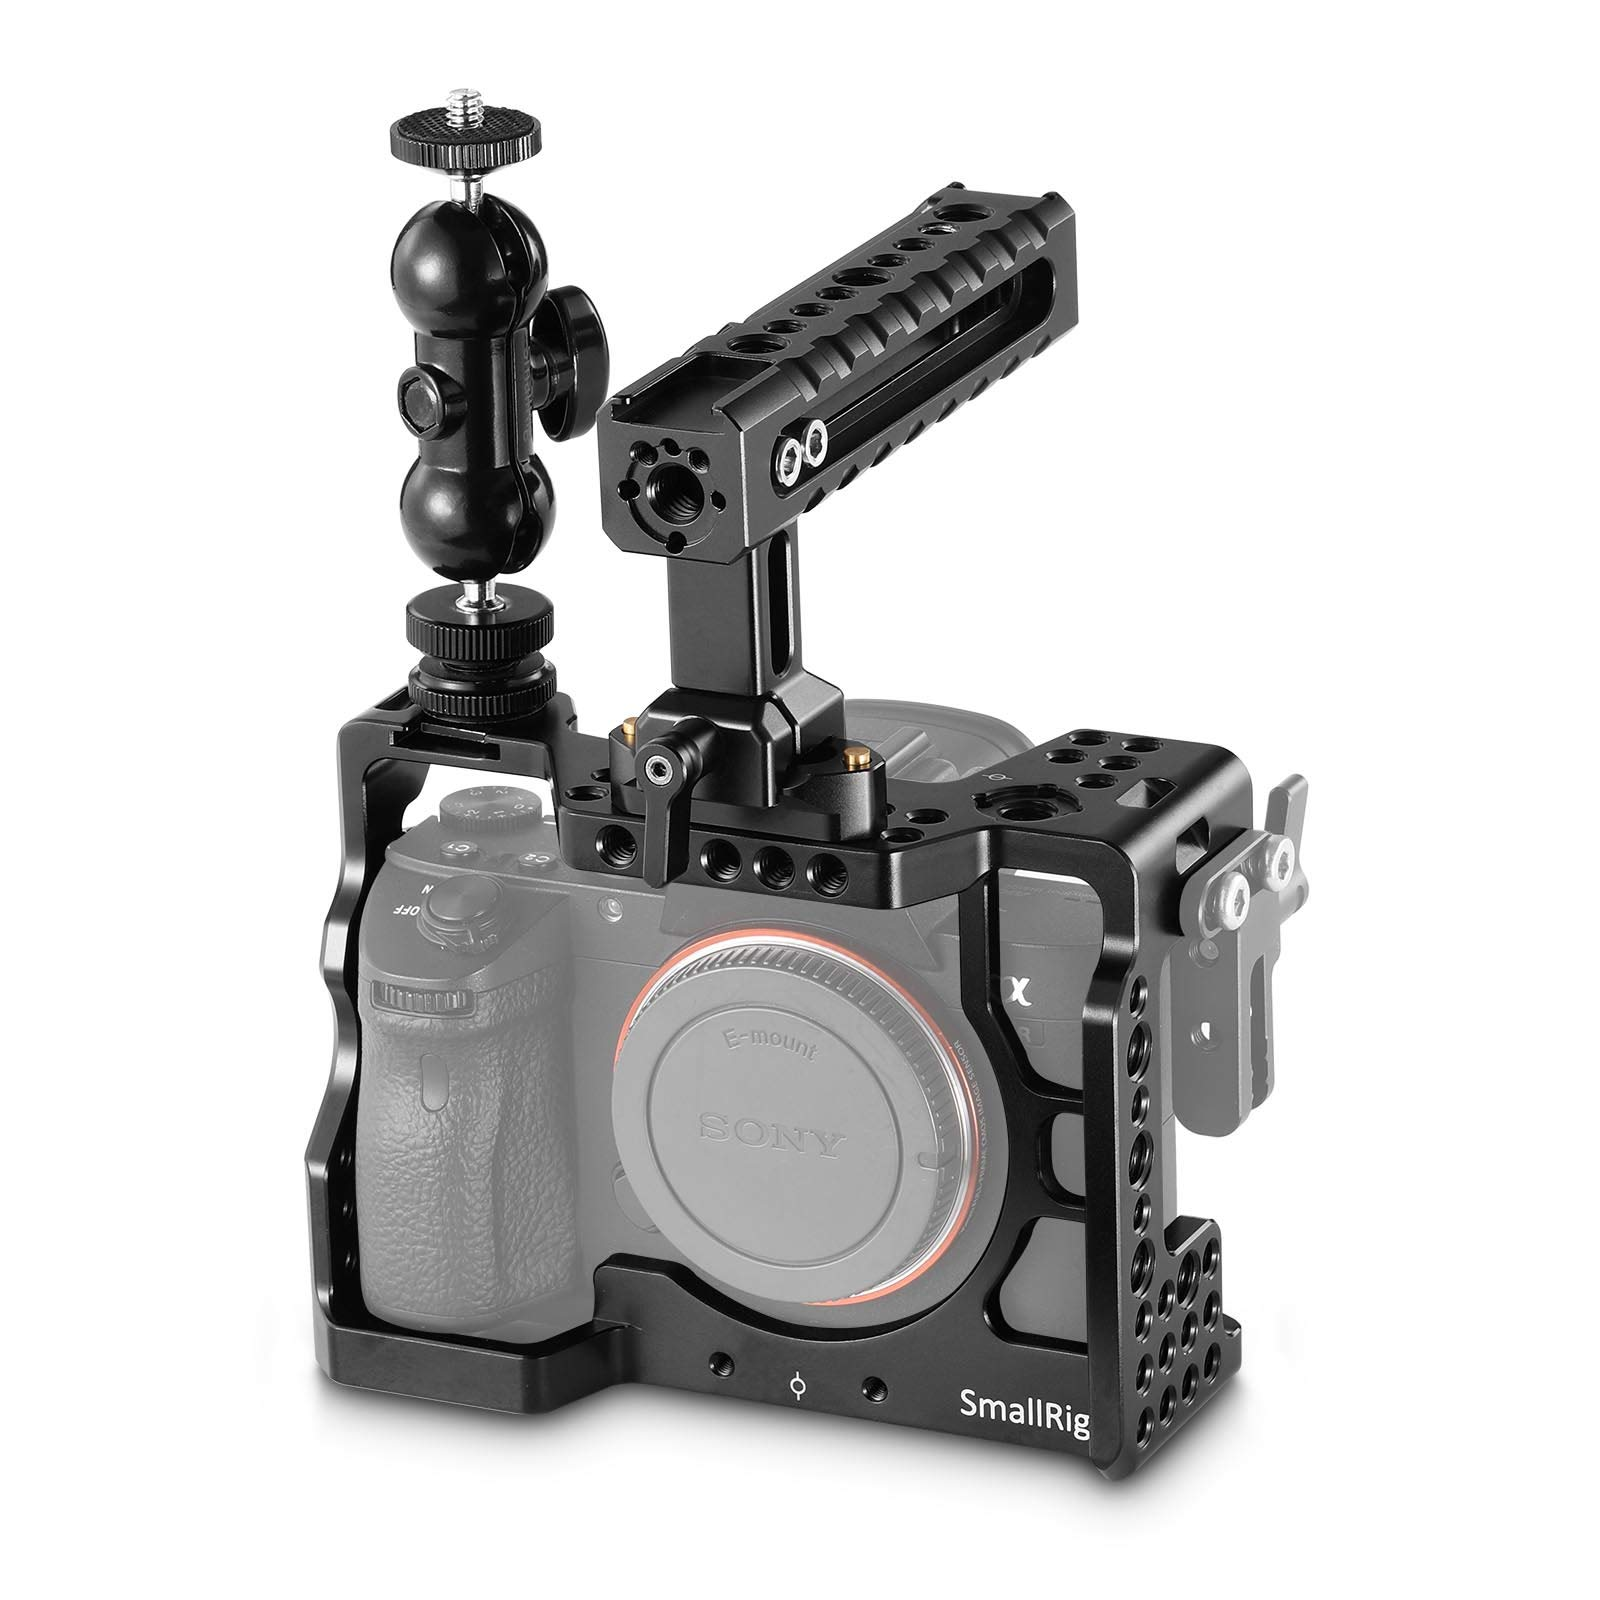 Smallrig 2103 A7riii Cage Kit Rig For Sony A7riii/a7iii C...